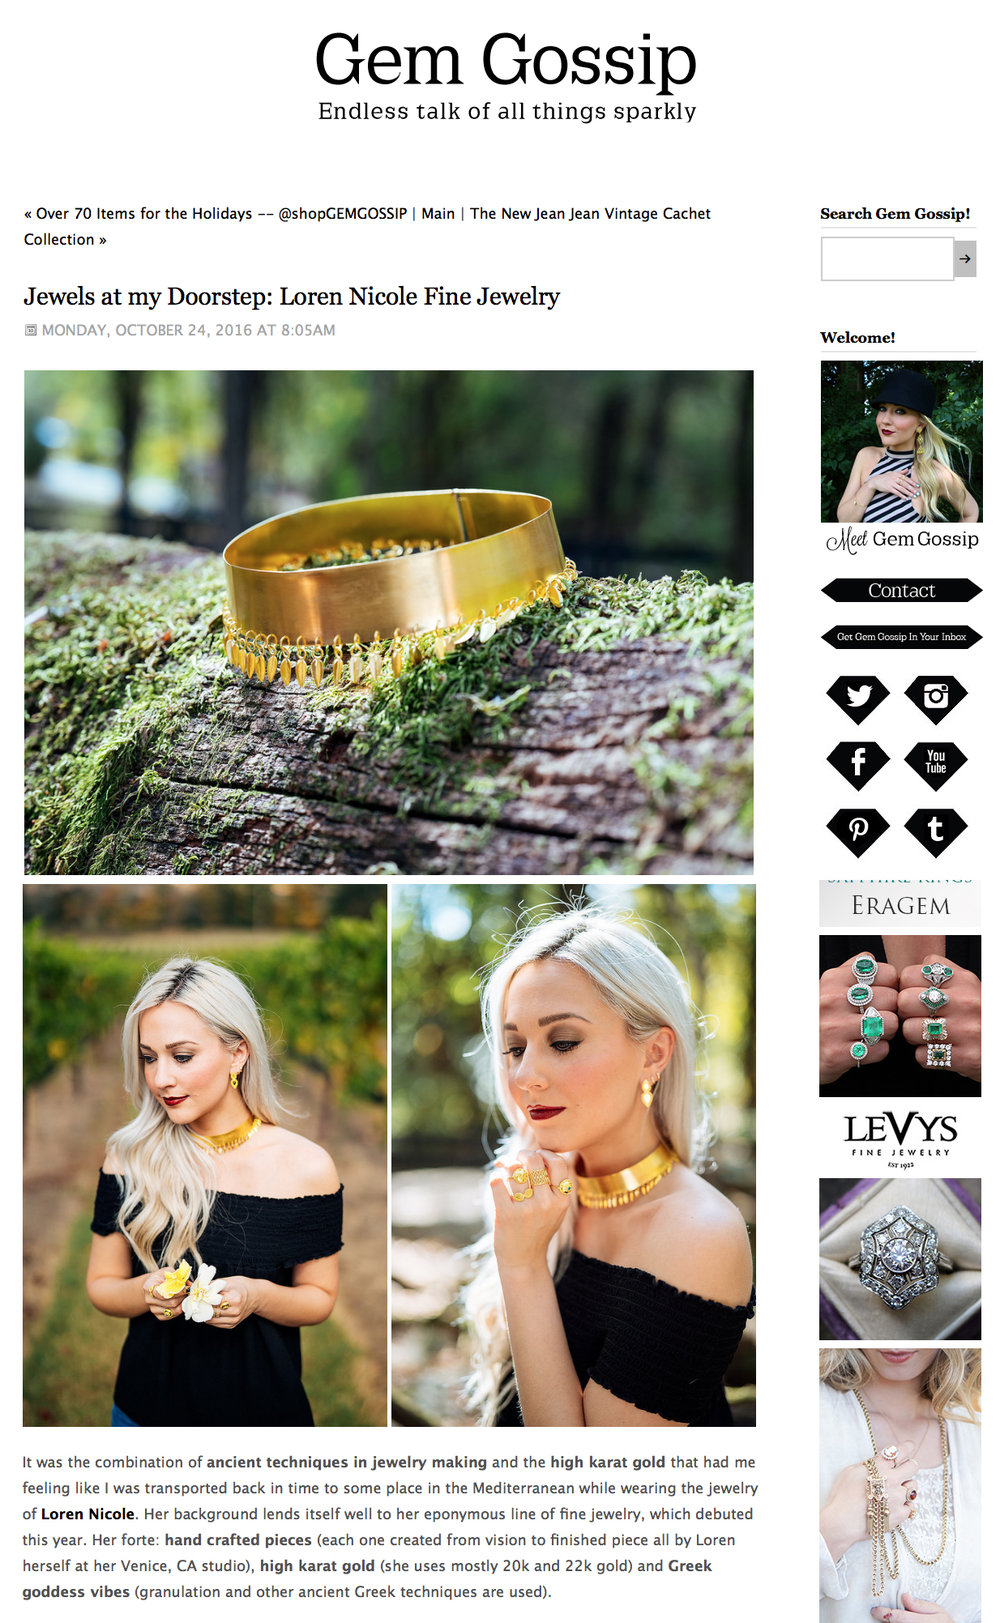 Jewels at my Doorstep: Loren Nicole Fine Jewelry  by Gem Gossip. October 2016.    Read article here